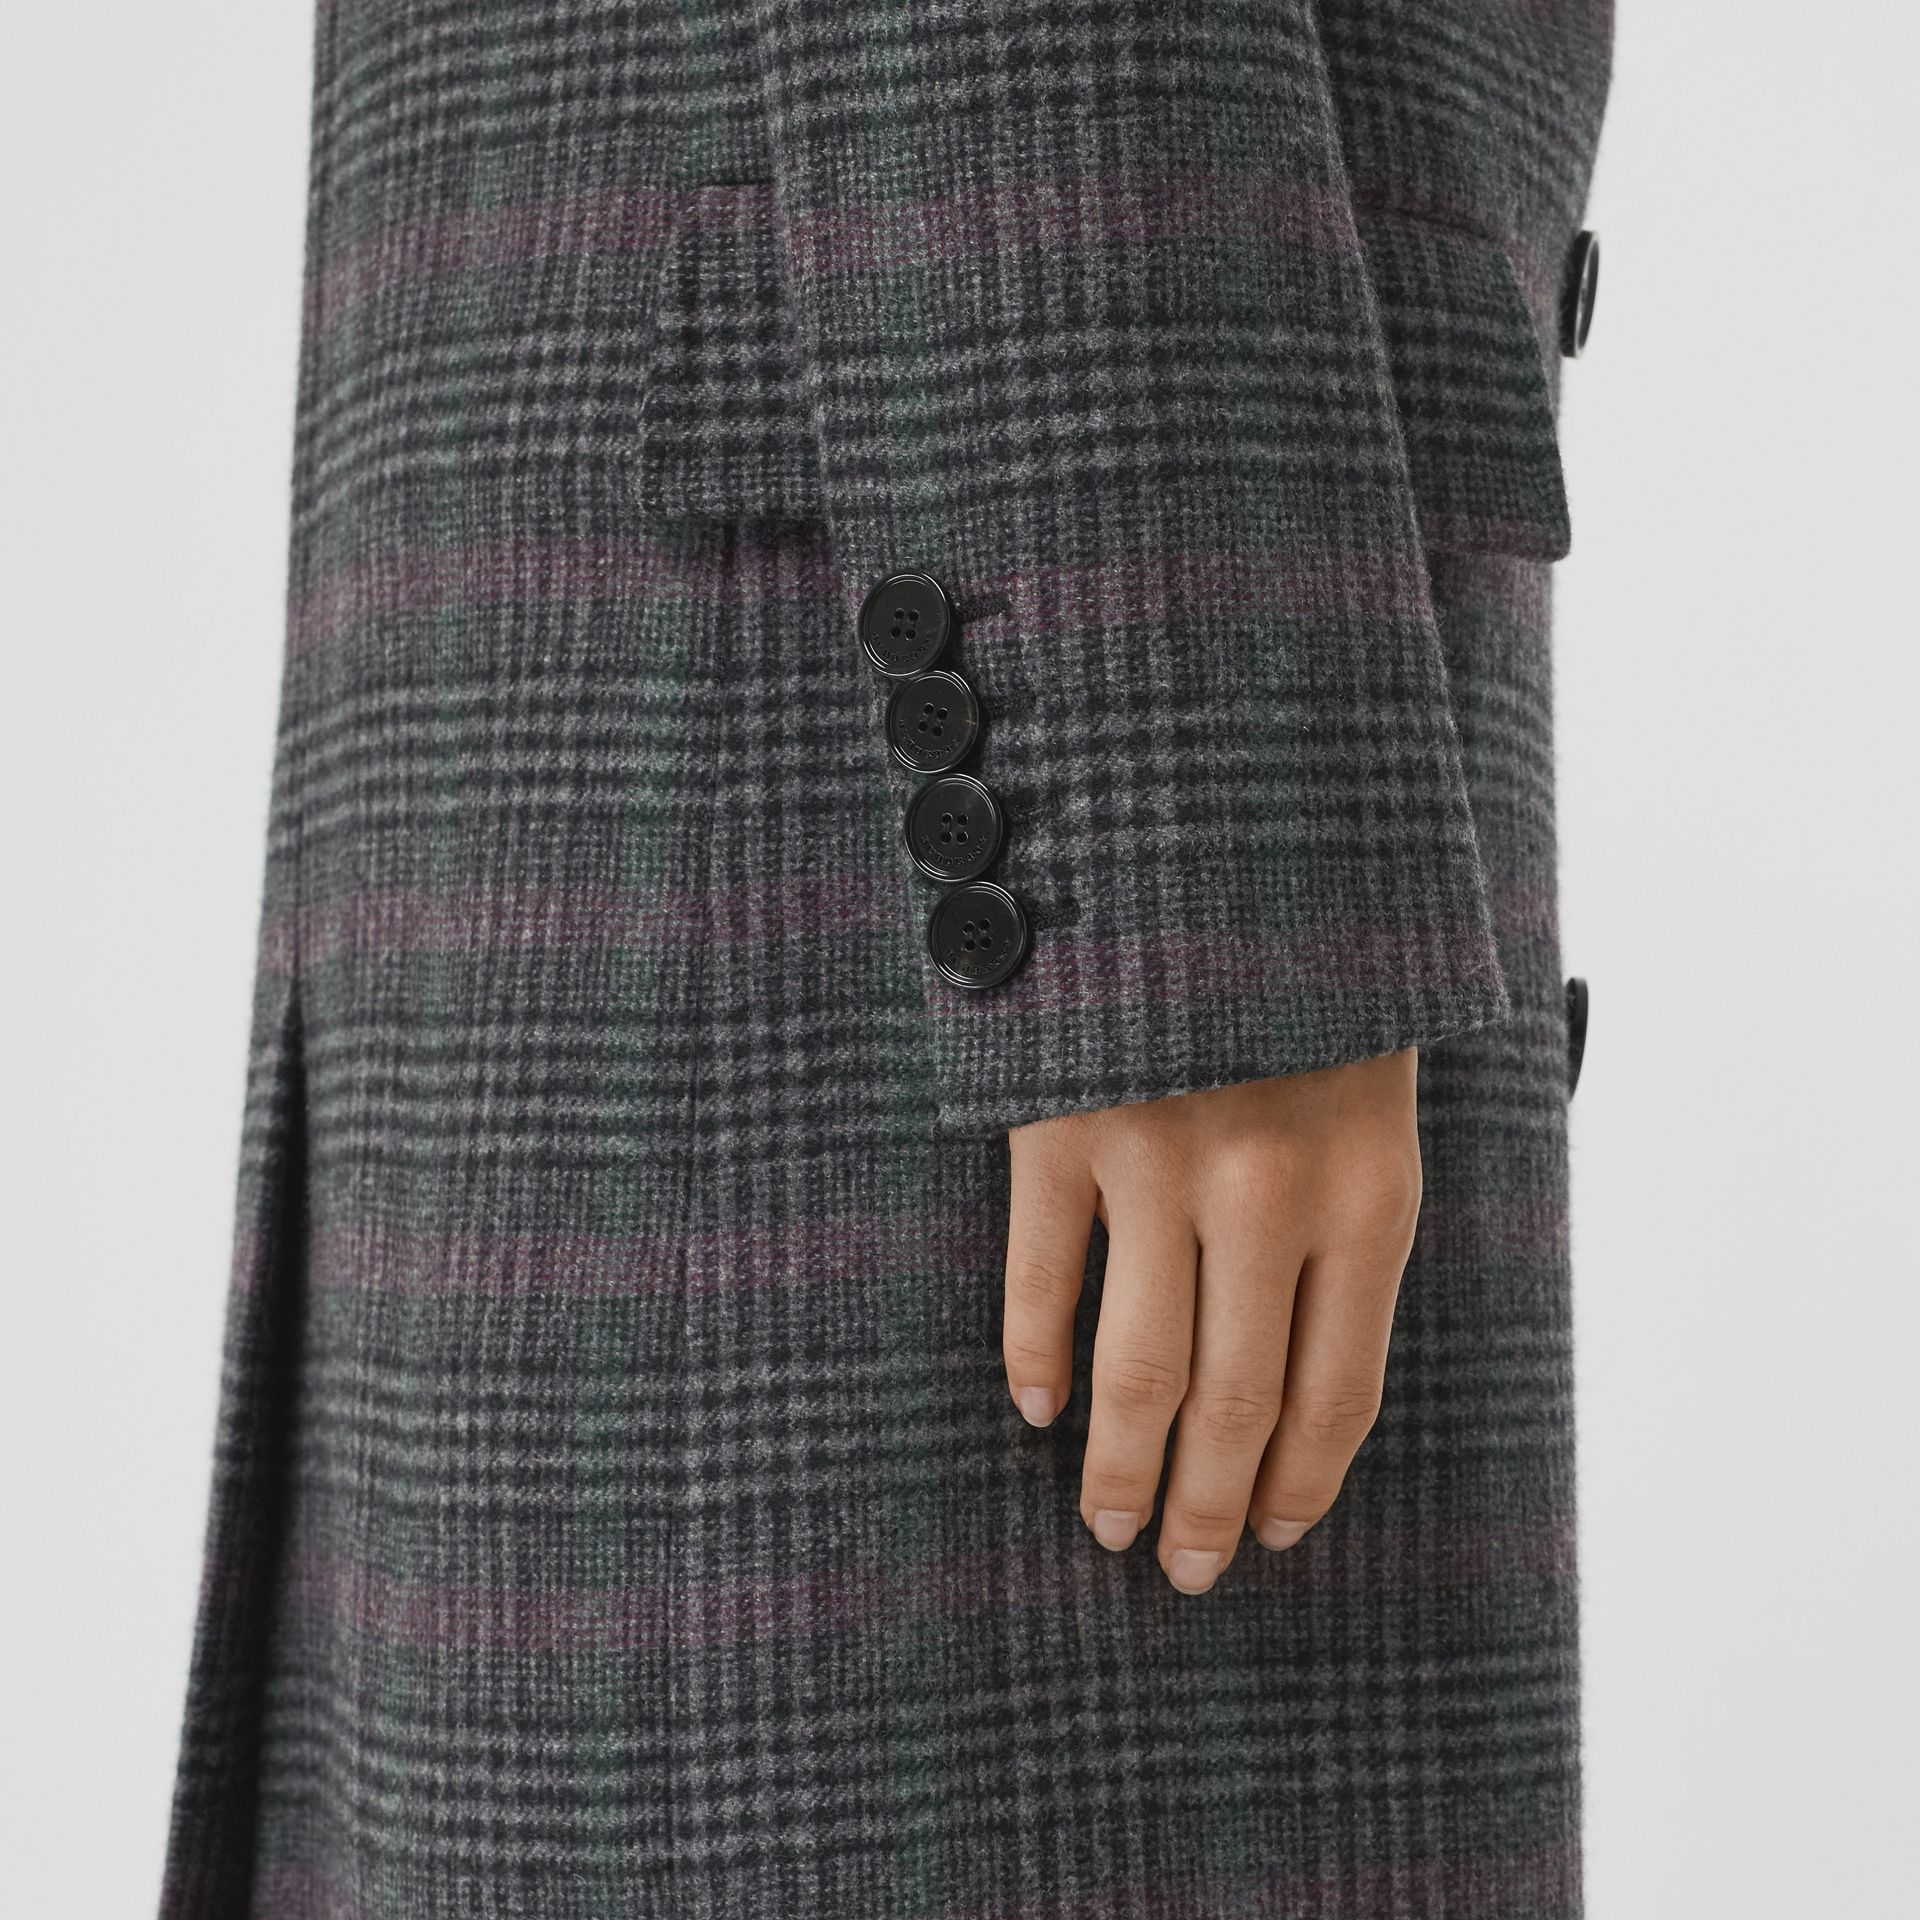 Prince of Wales Check Wool Tailored Coat in Charcoal - Women | Burberry United States - gallery image 4